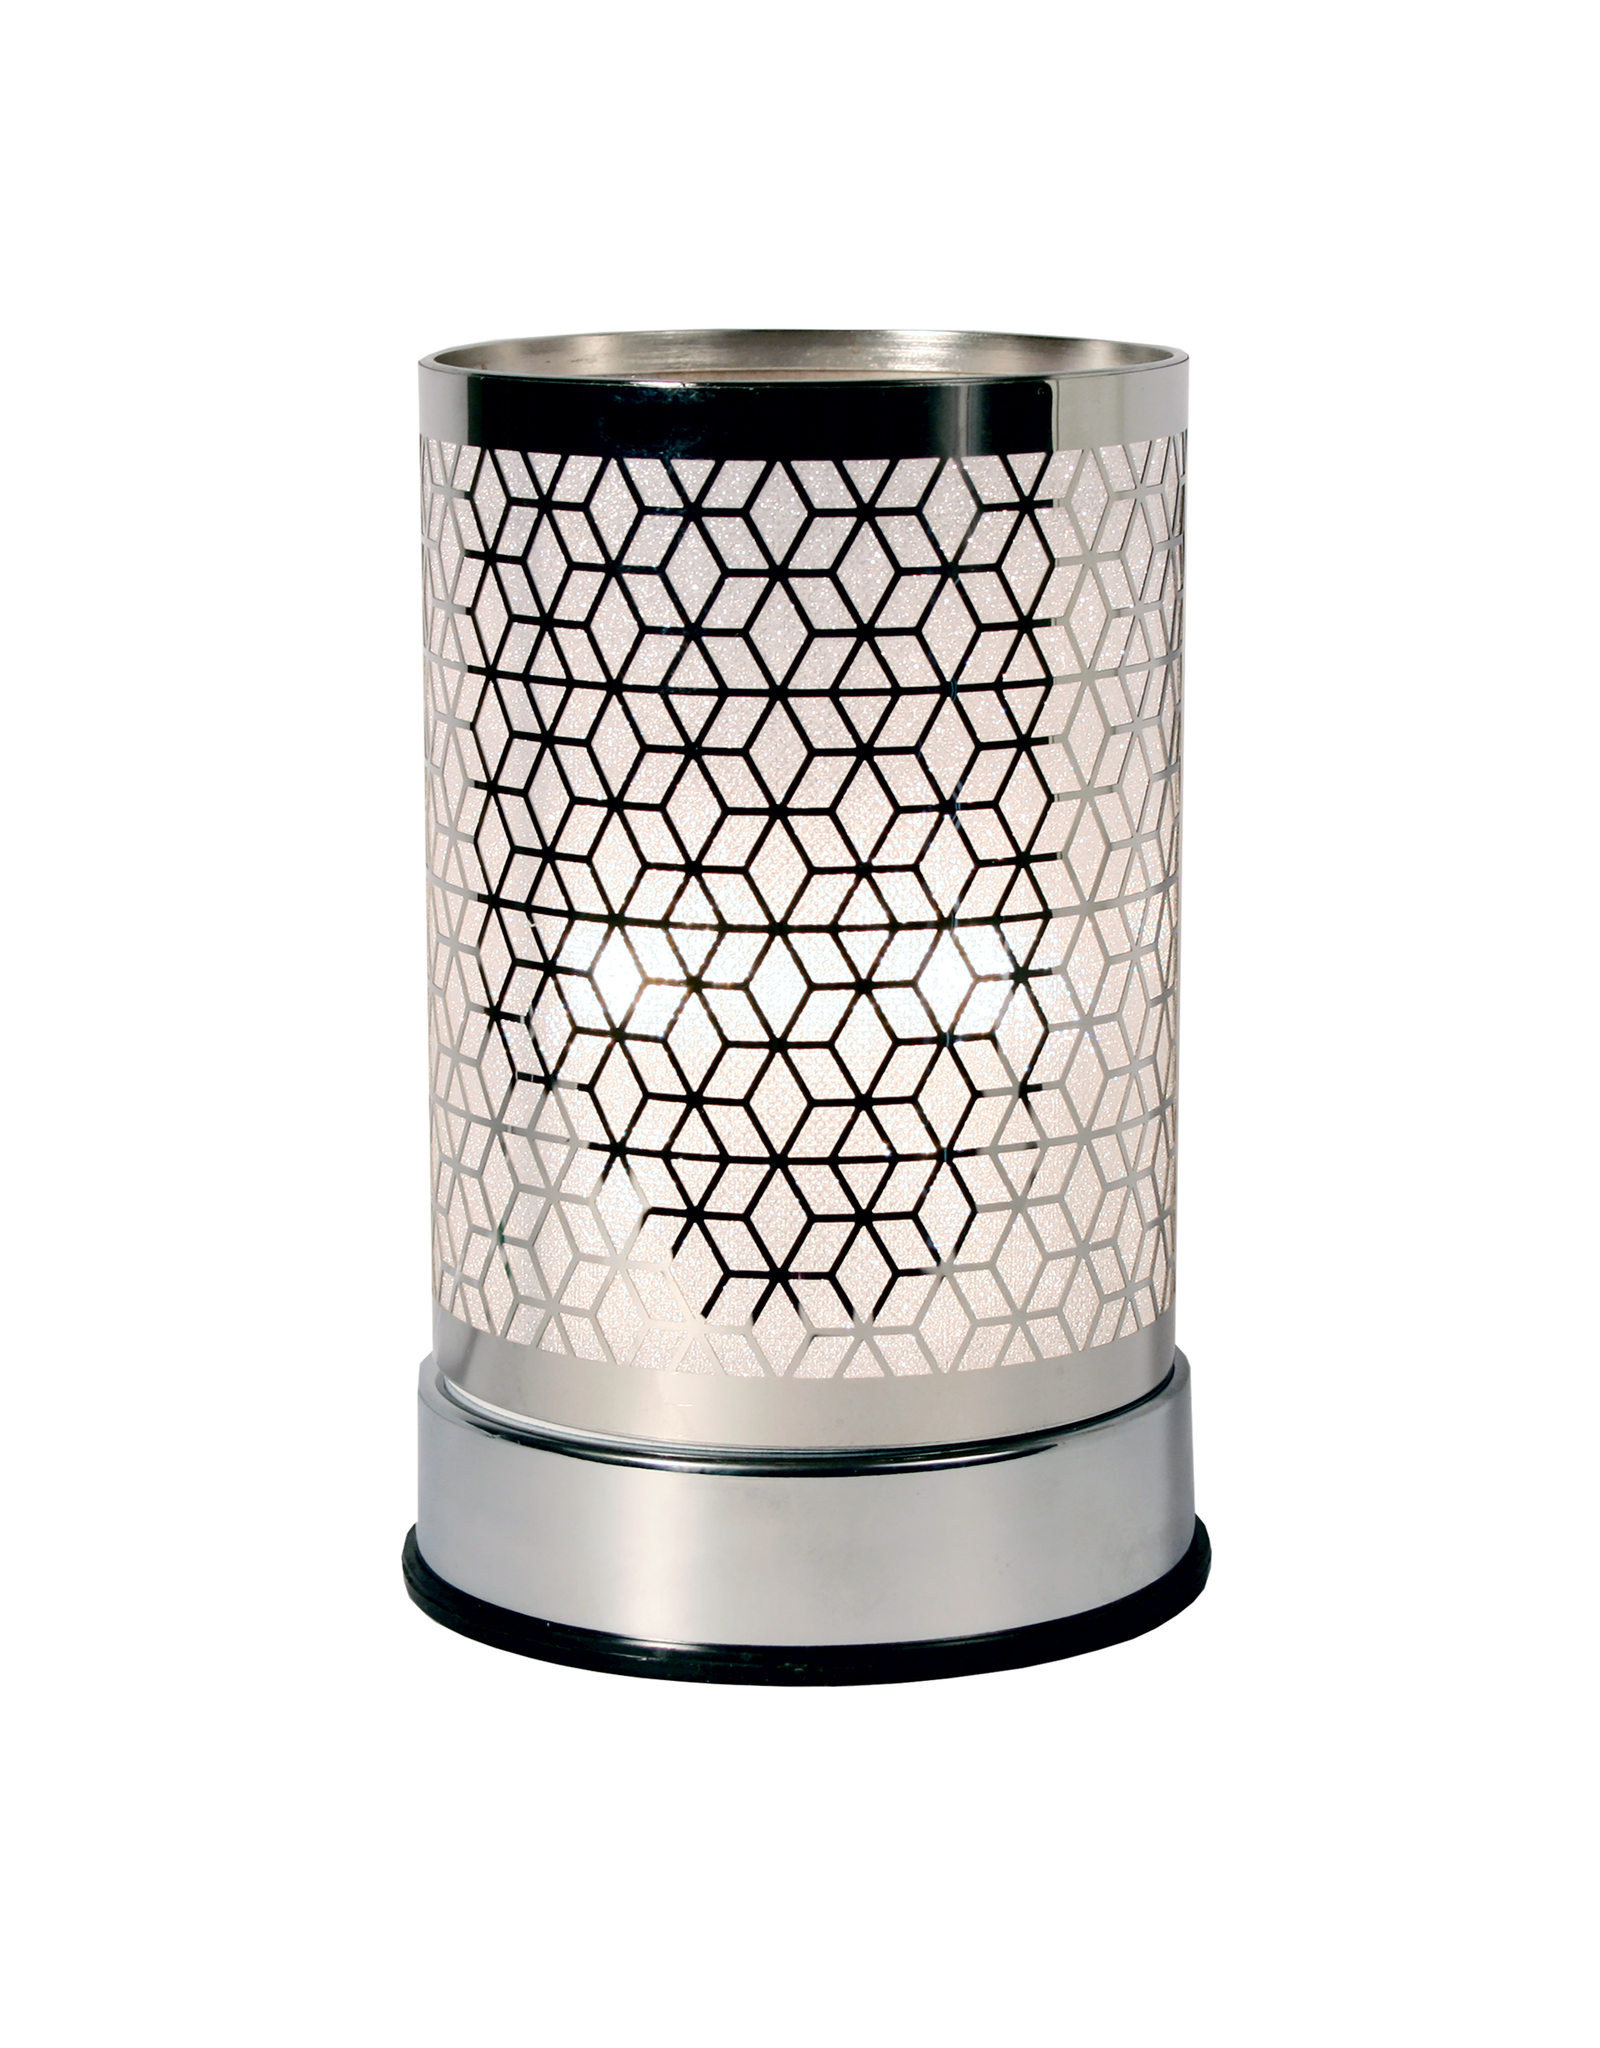 Scentchips Crystal Contempo Warmer